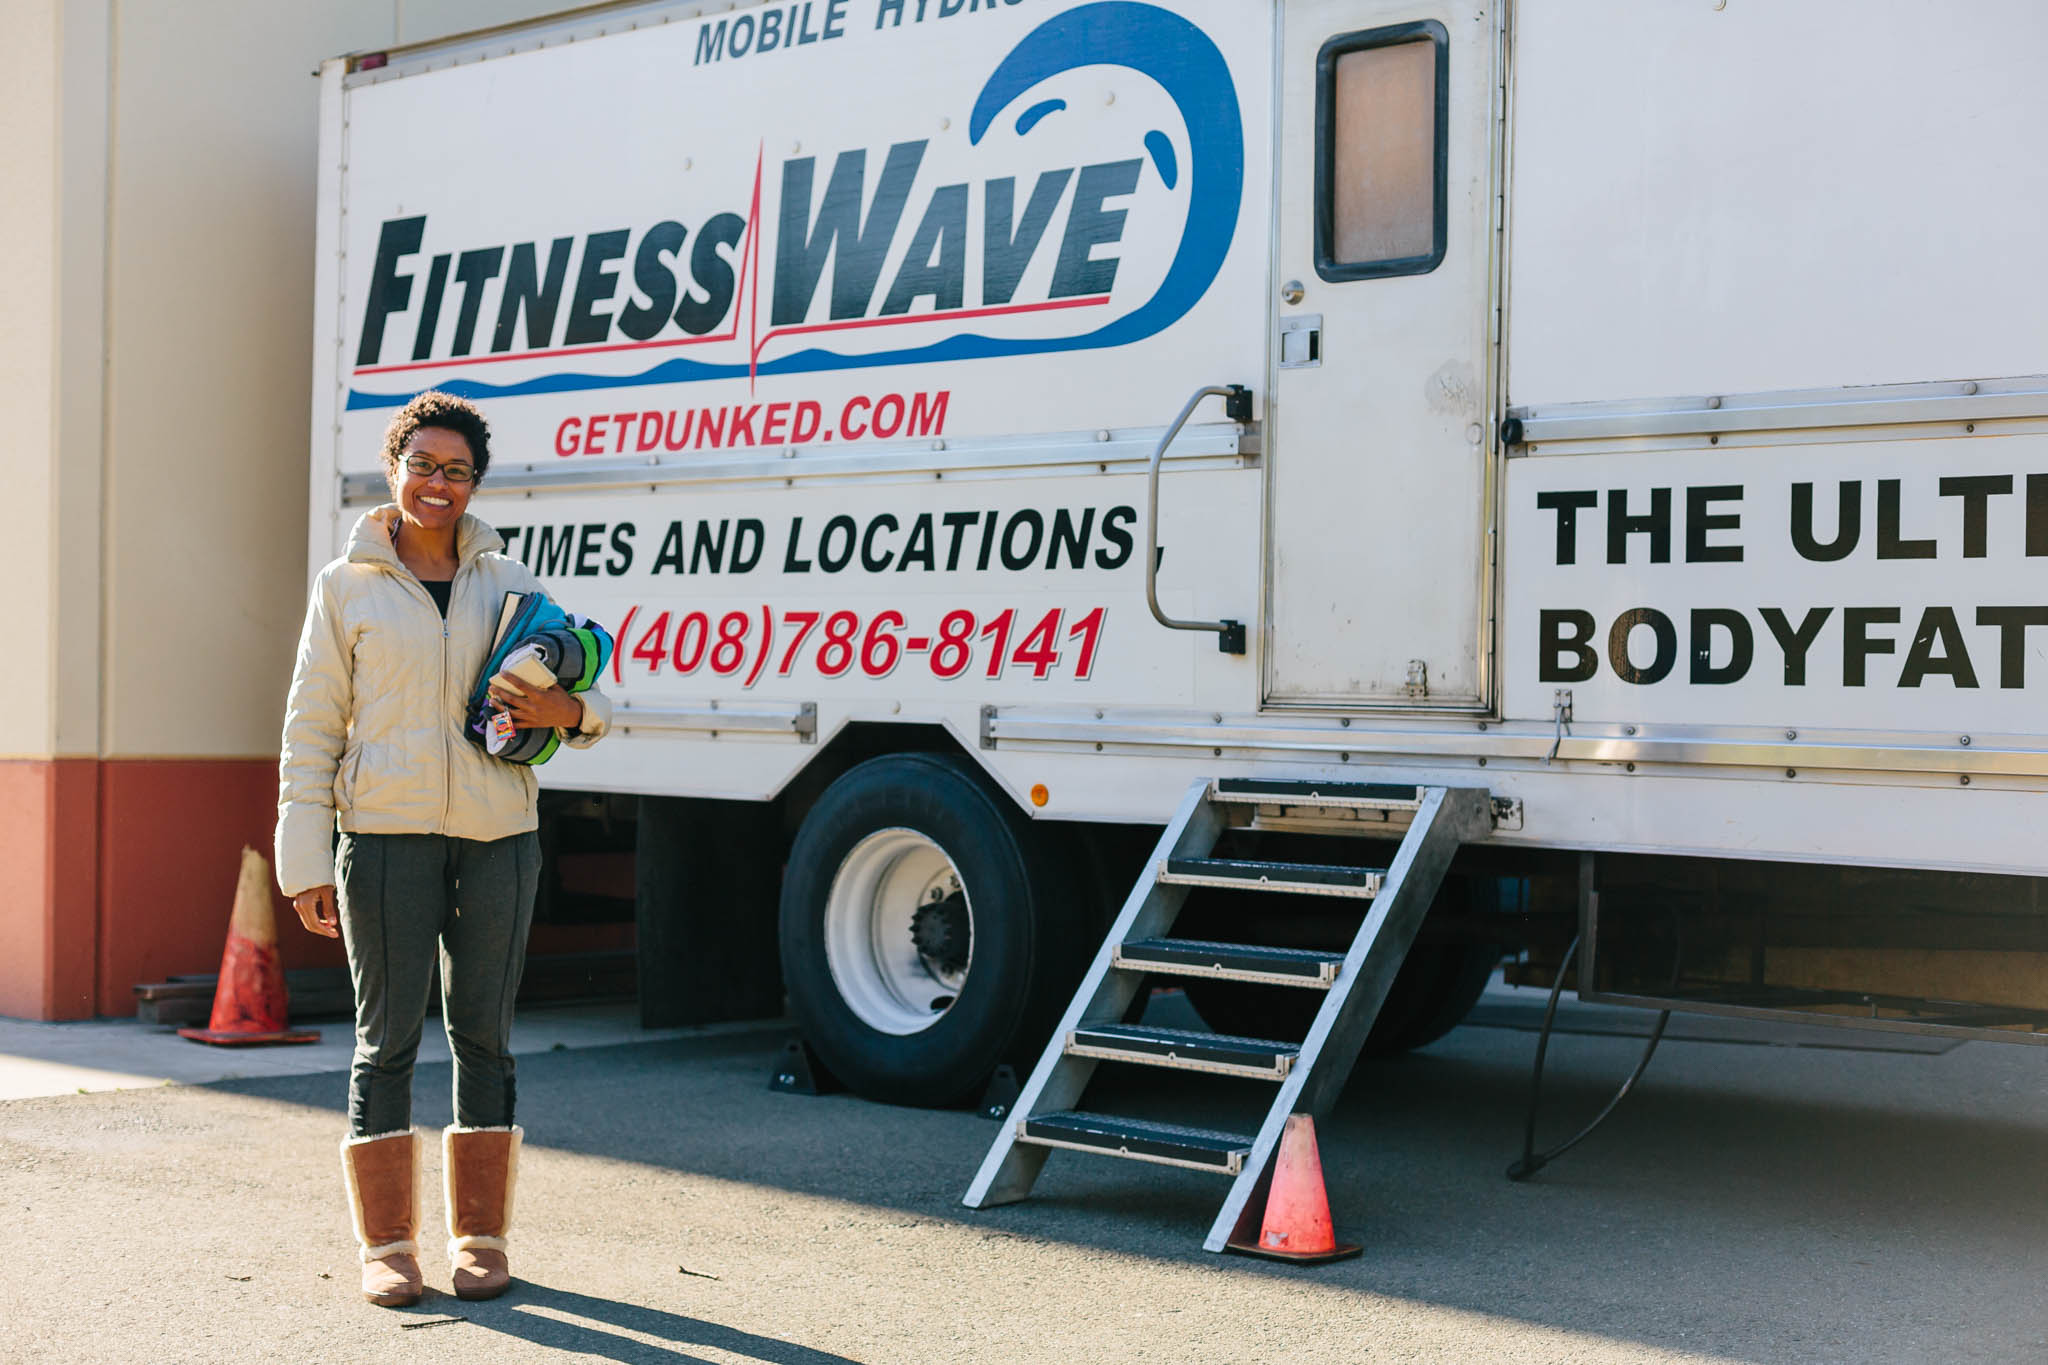 About to go in! We went with  Fitness Wave  for their mobile testing service and they were AMAZING! Highly recommend them.